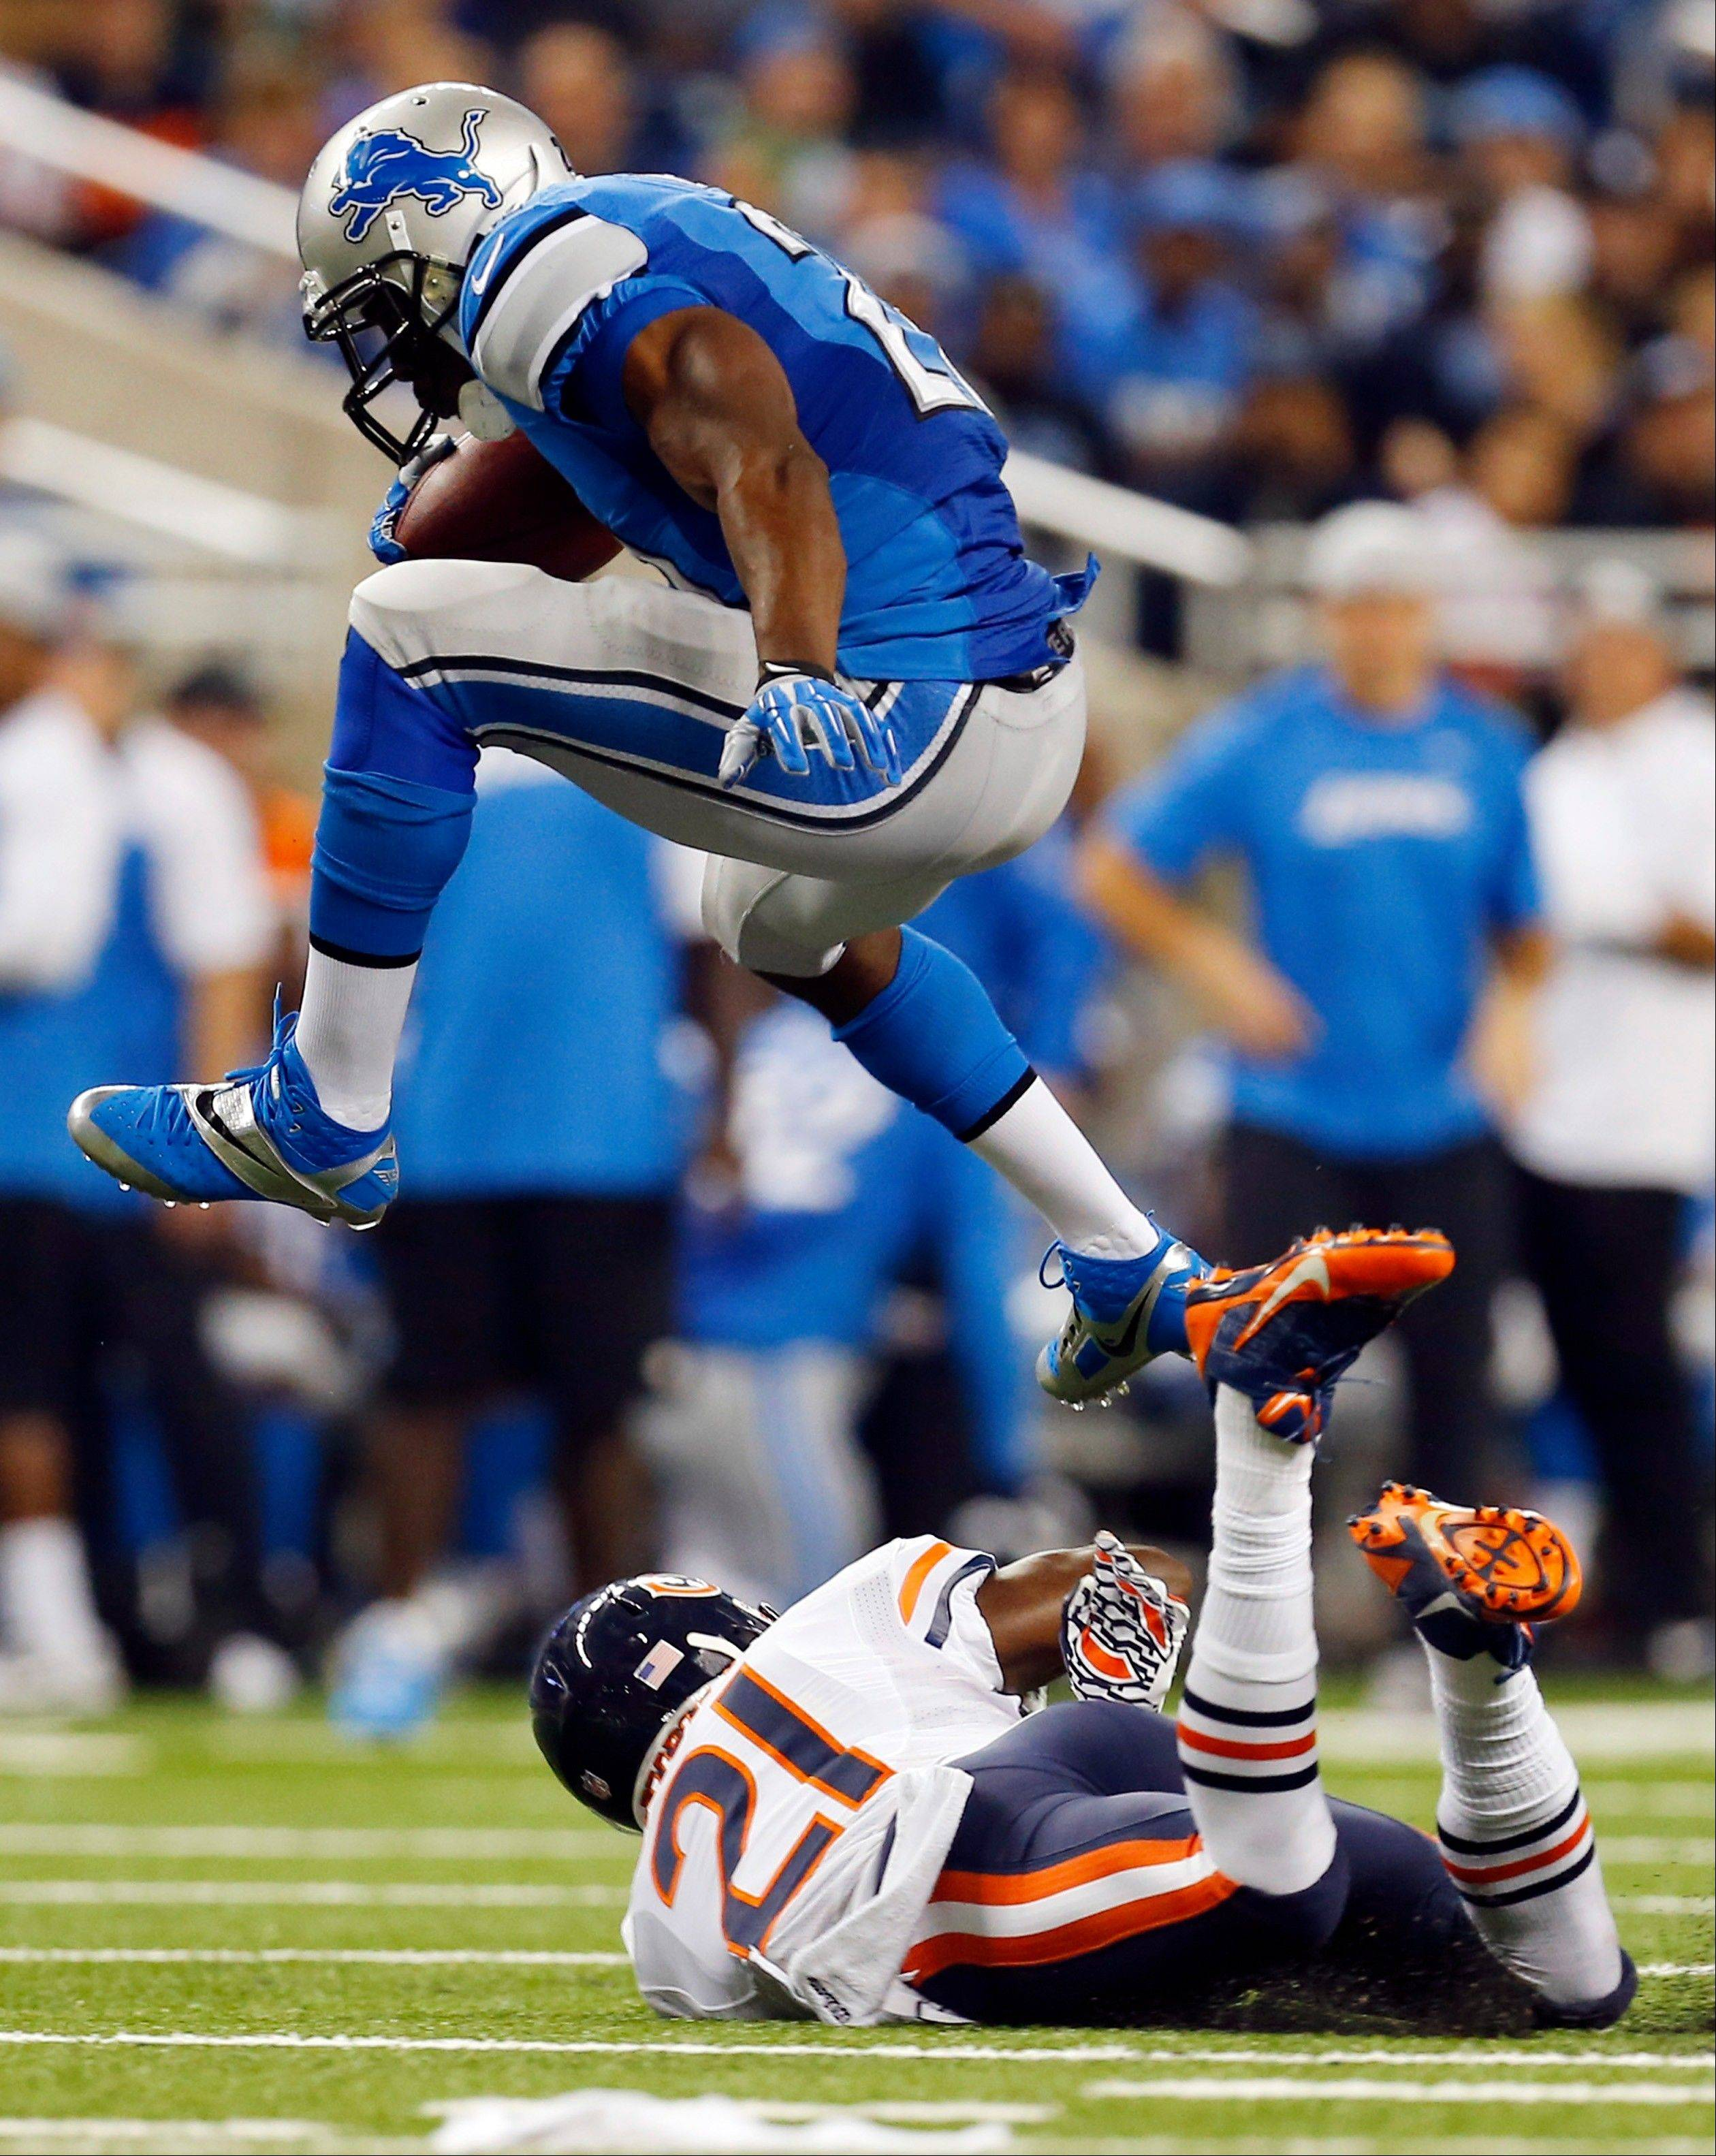 Detroit Lions running back Reggie Bush, top, jumps over Chicago Bears strong safety Major Wright (21) while heading for the end zone on a 37-yard touchdown run during the second quarter.